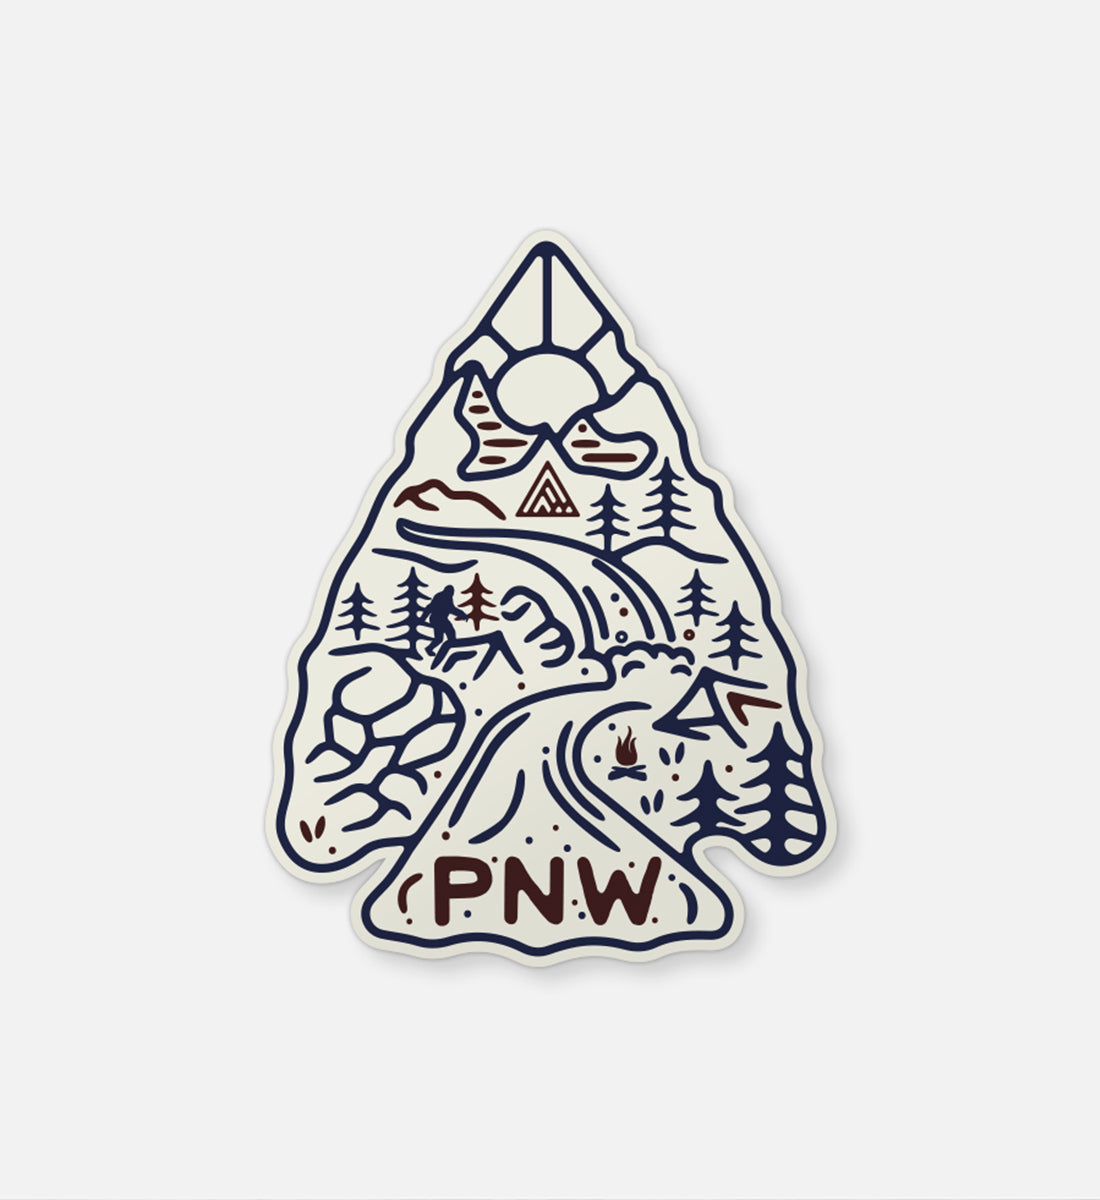 Arrowhead Sticker - The Great PNW